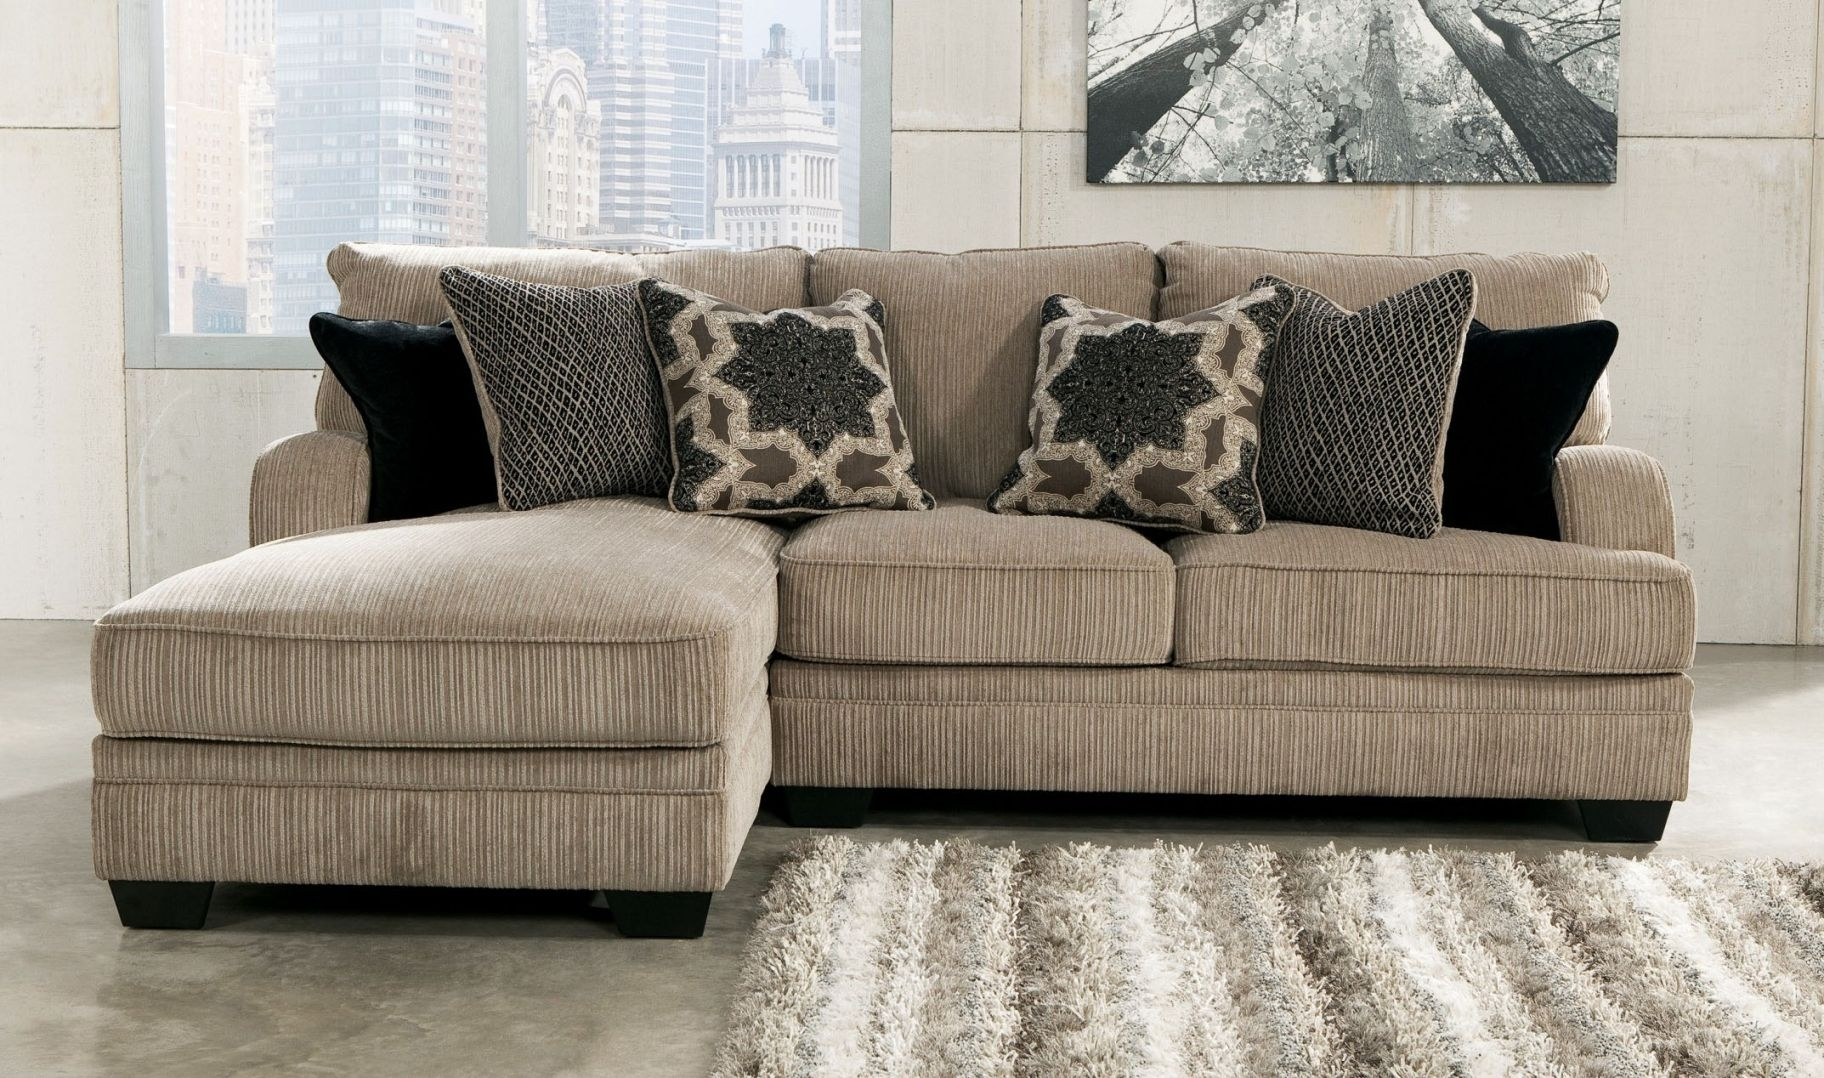 Small Sectional Sofa With Chaise And Ottoman In Small Sectional Sofas With Chaise And Ottoman (View 2 of 10)